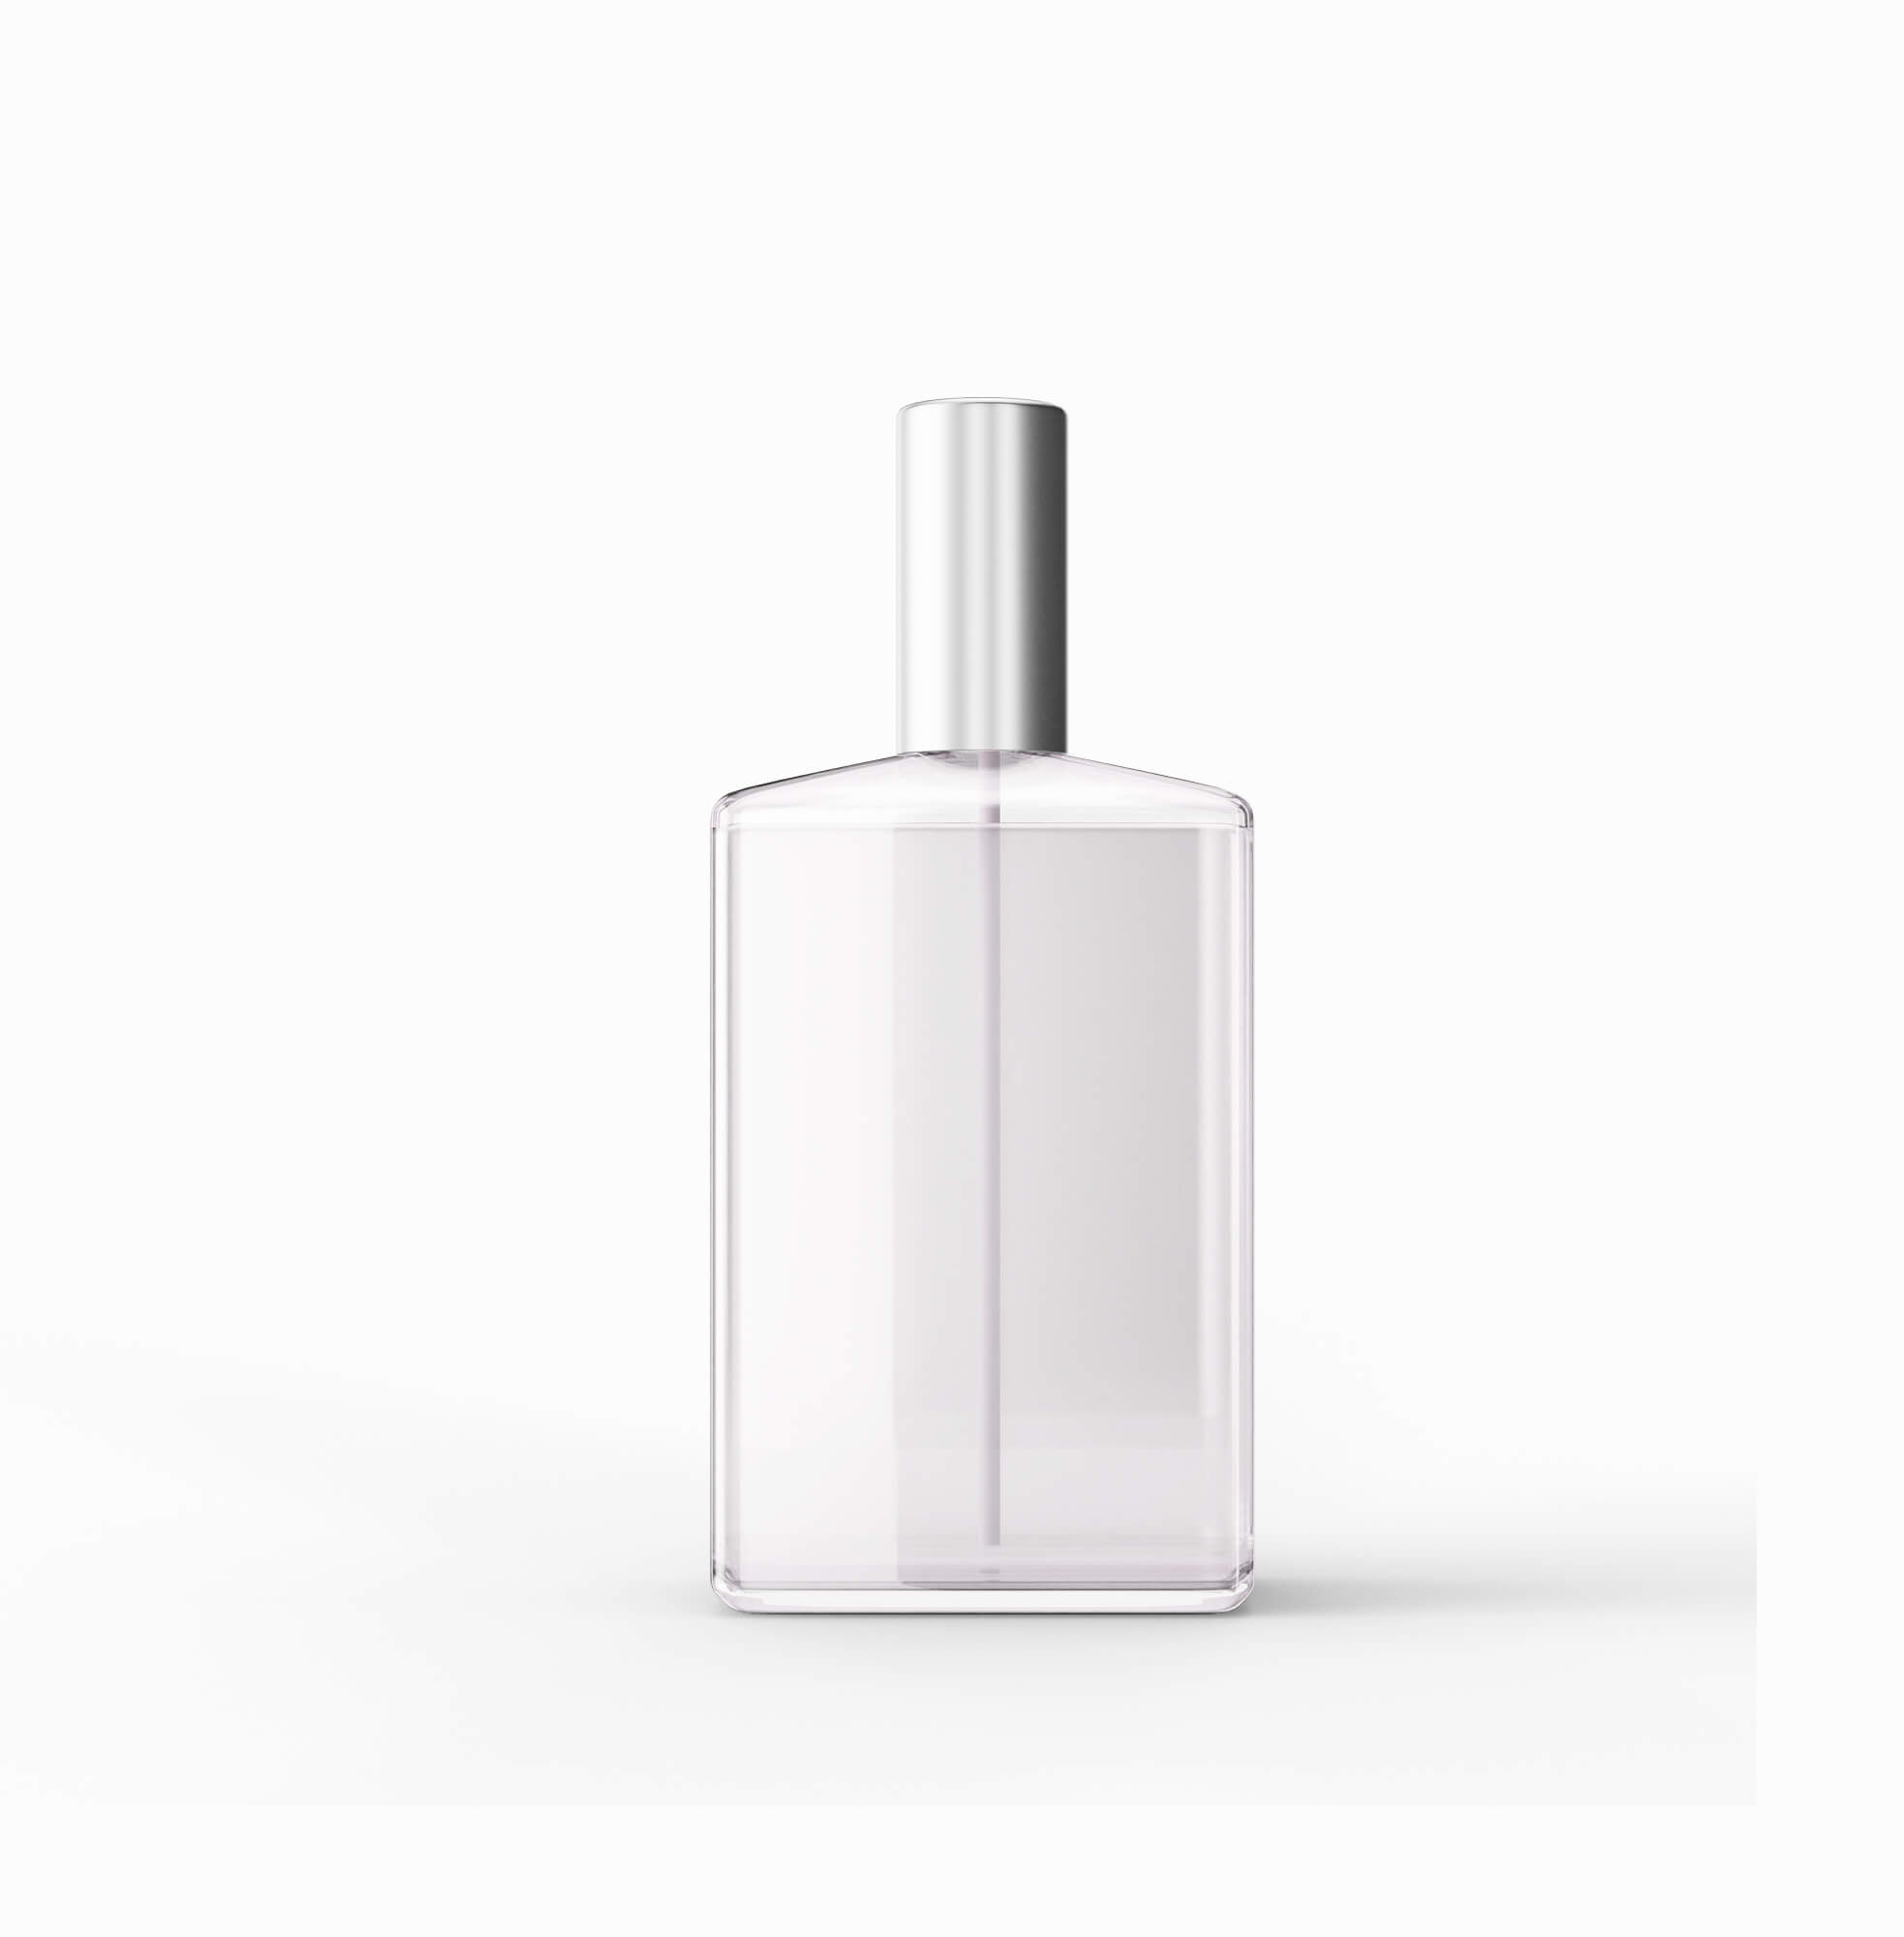 Blank Free Cologne Mockup PSD Template